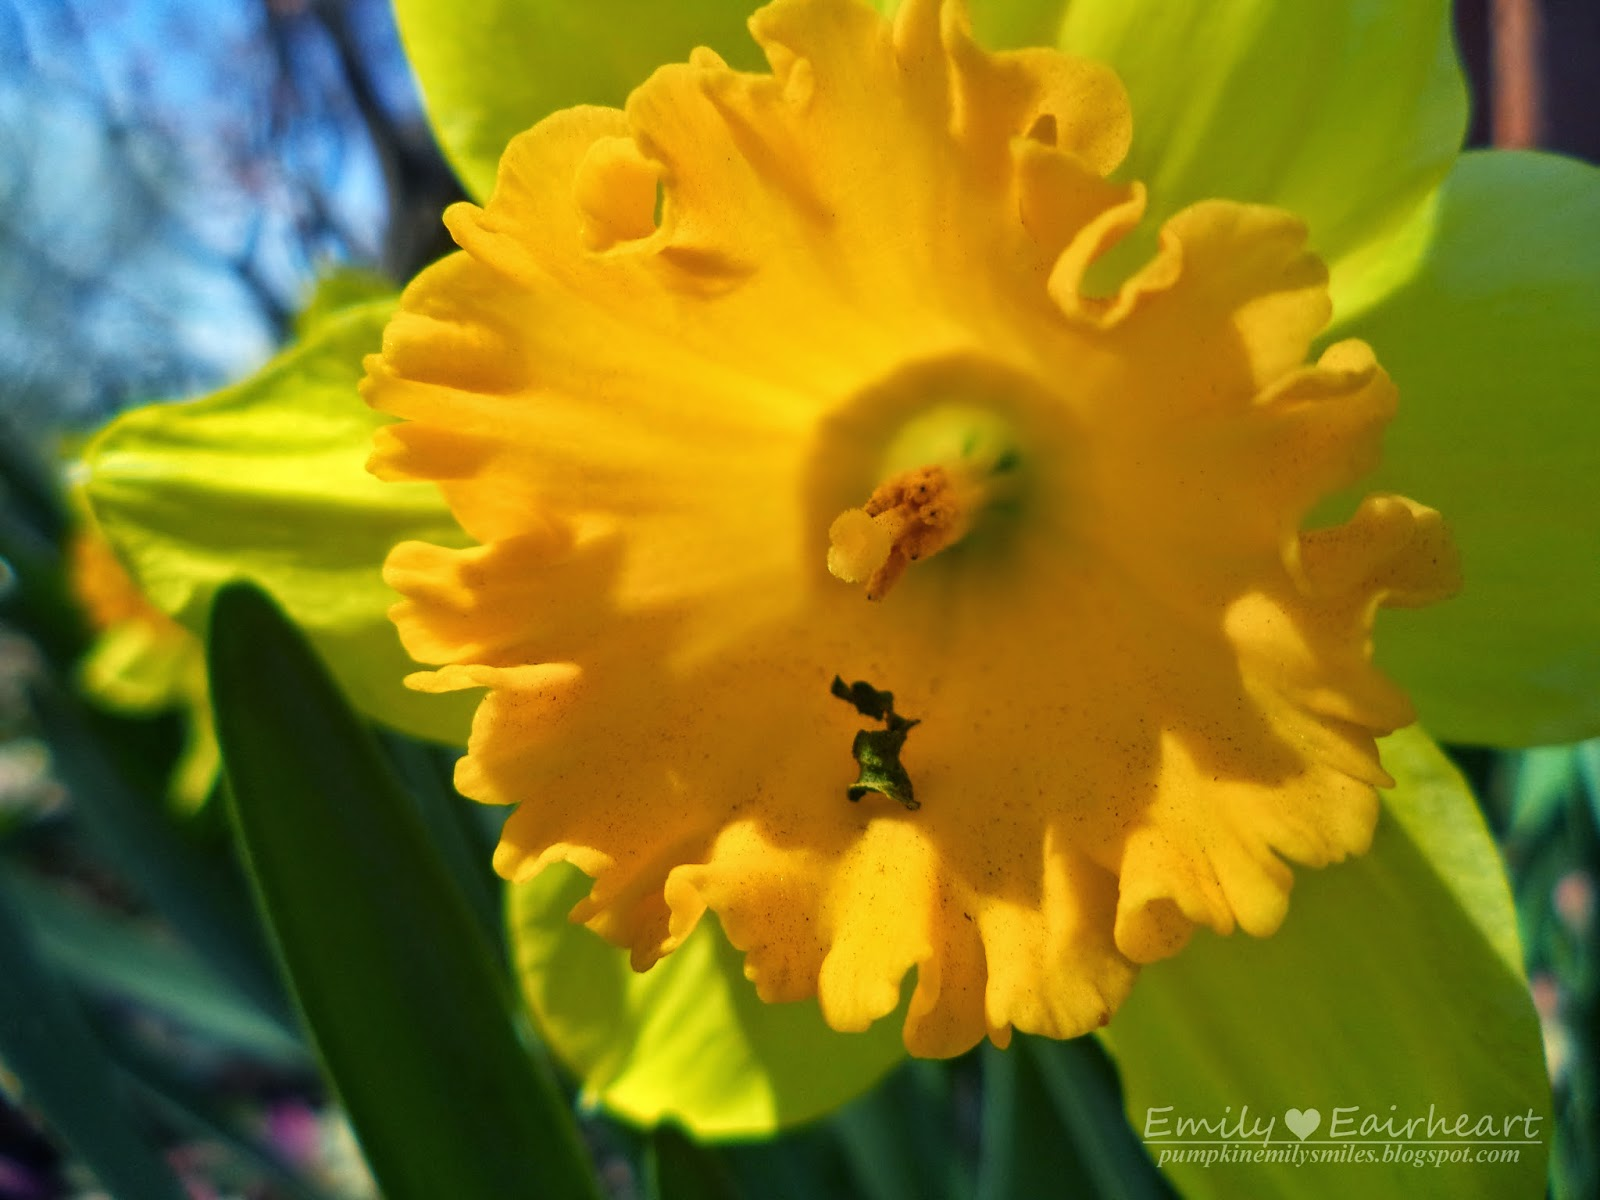 A tiny leaf stuck in a Daffodil.